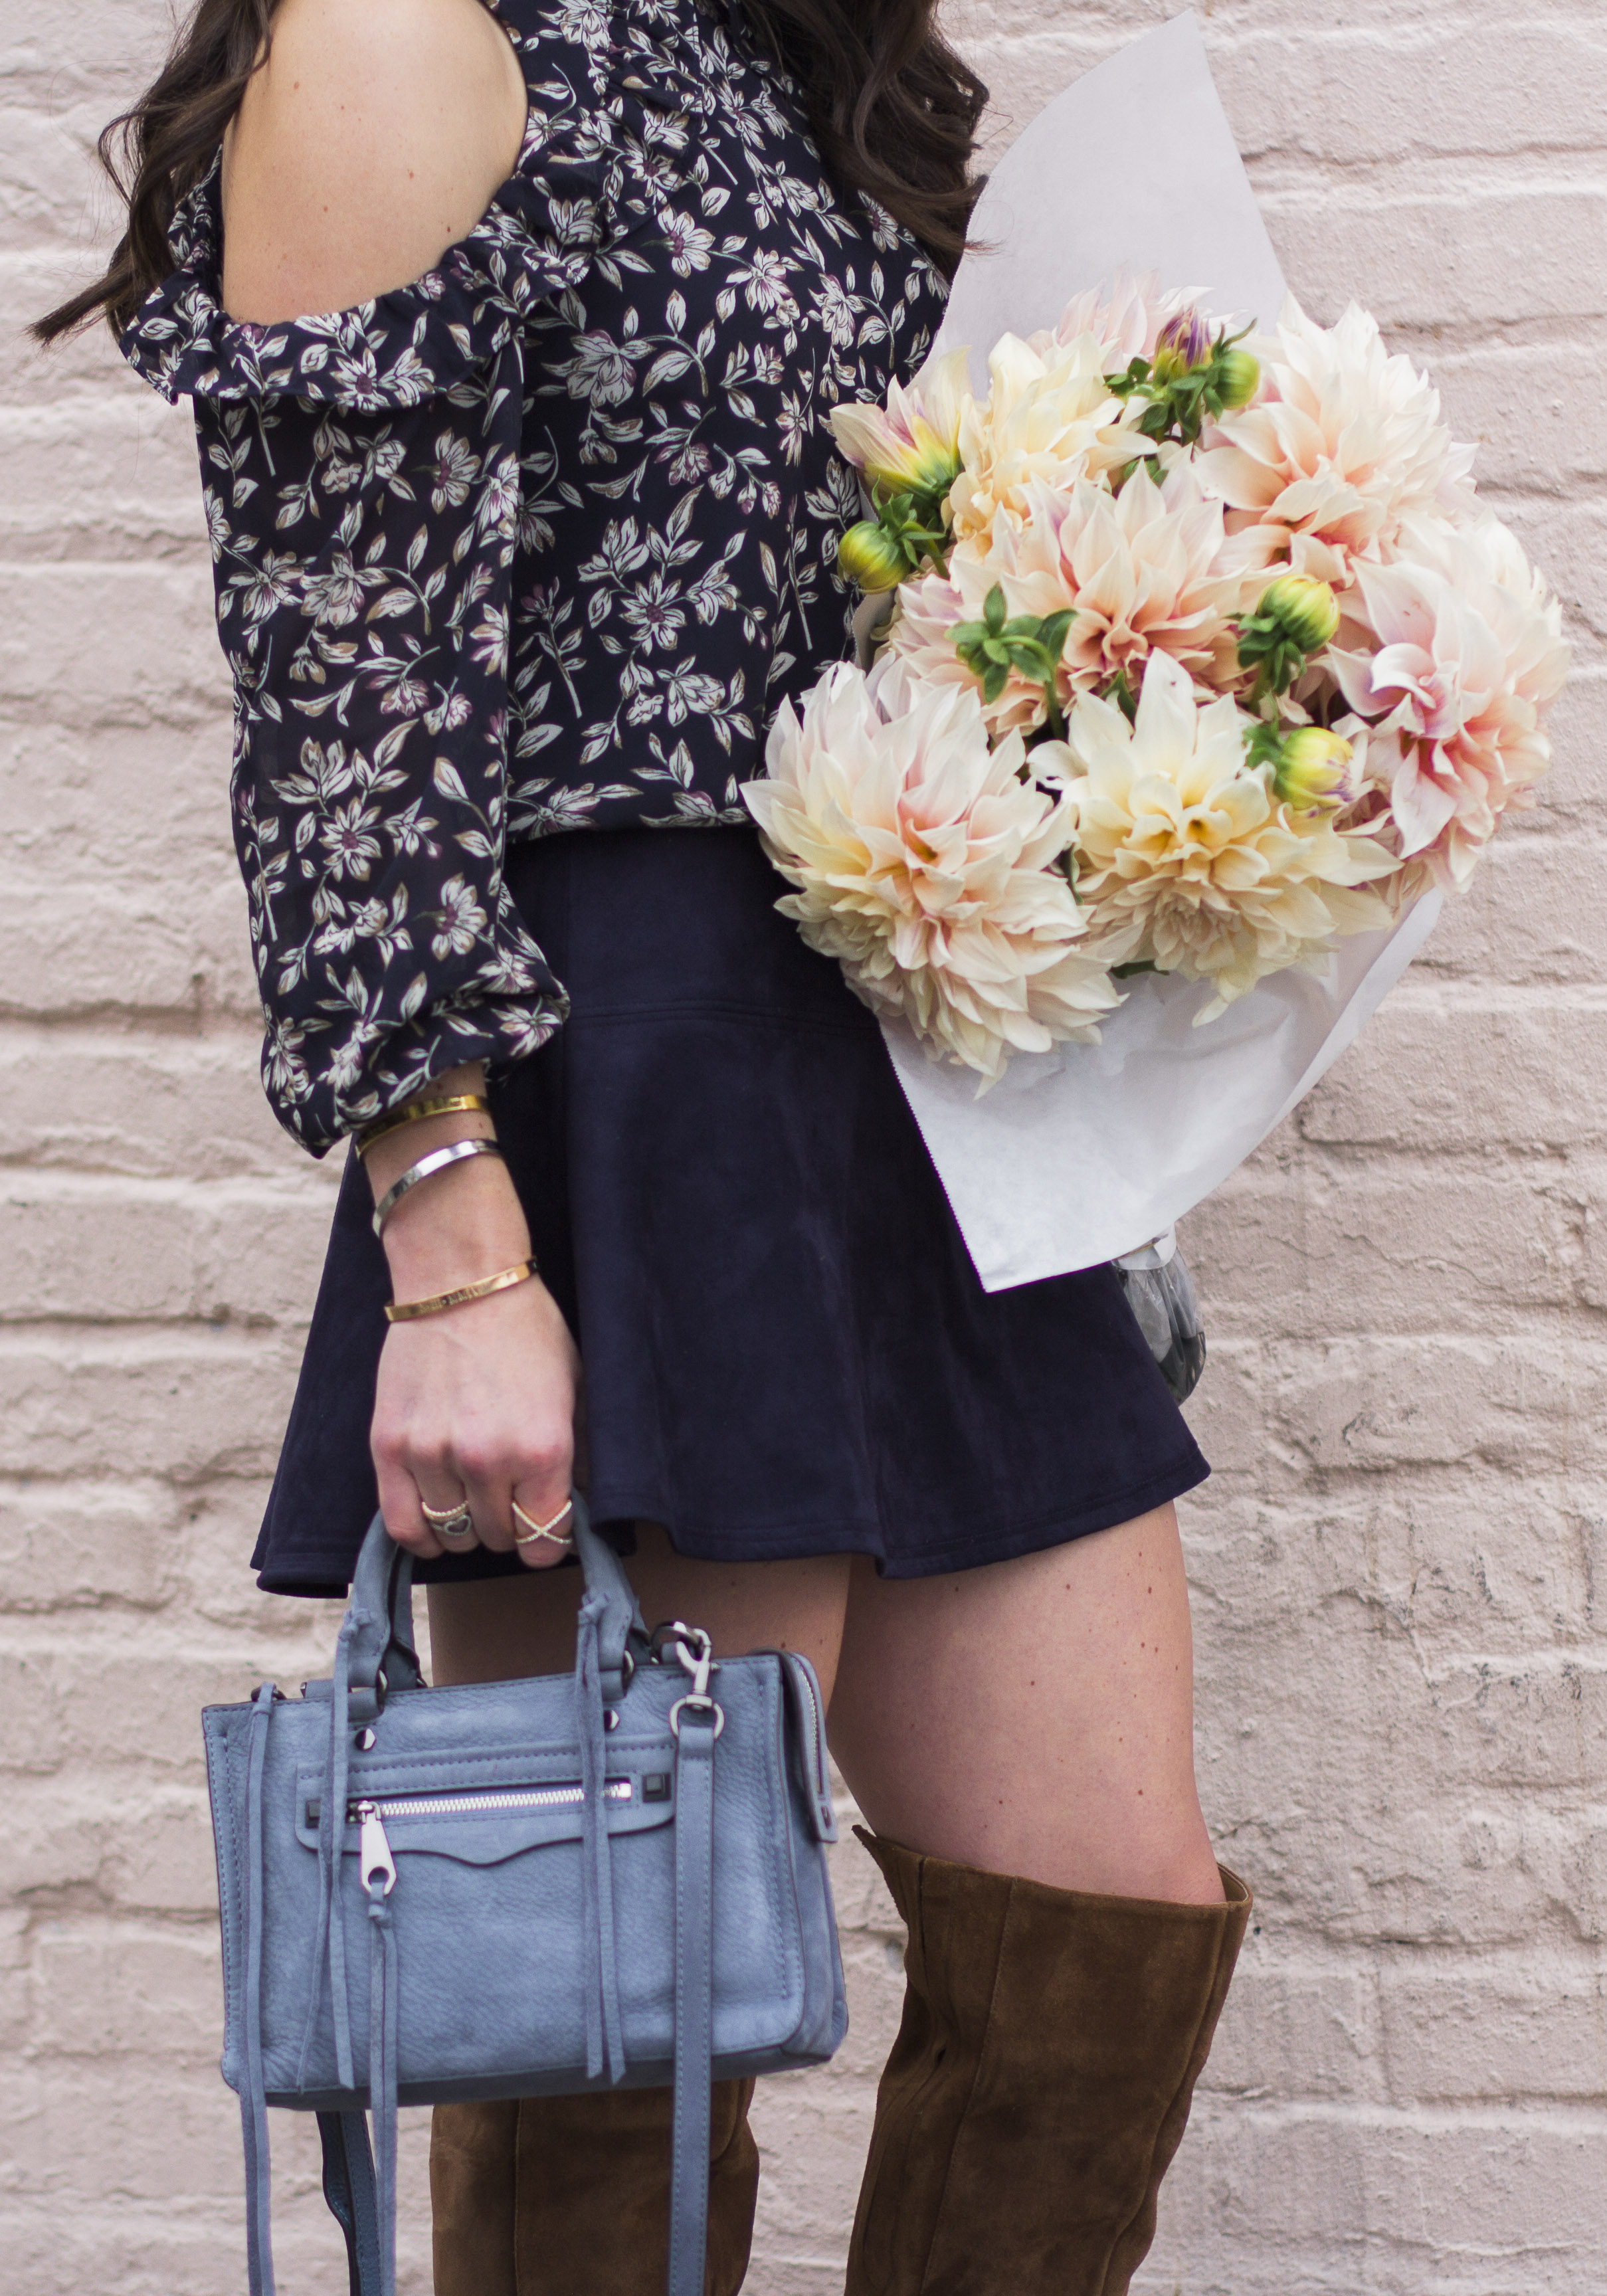 How to wear cold shoulder tops and dresses this fall, JOA floral print cold shoulder top, BB Dakota Abrams Skirt, Steve Madden Eternul Over the knee Boots, Rebecca Minkoff Micro Regan Satchel, Pike's Place Market, Dinner Plate Dahlias, Seattle Fashion Blogger.